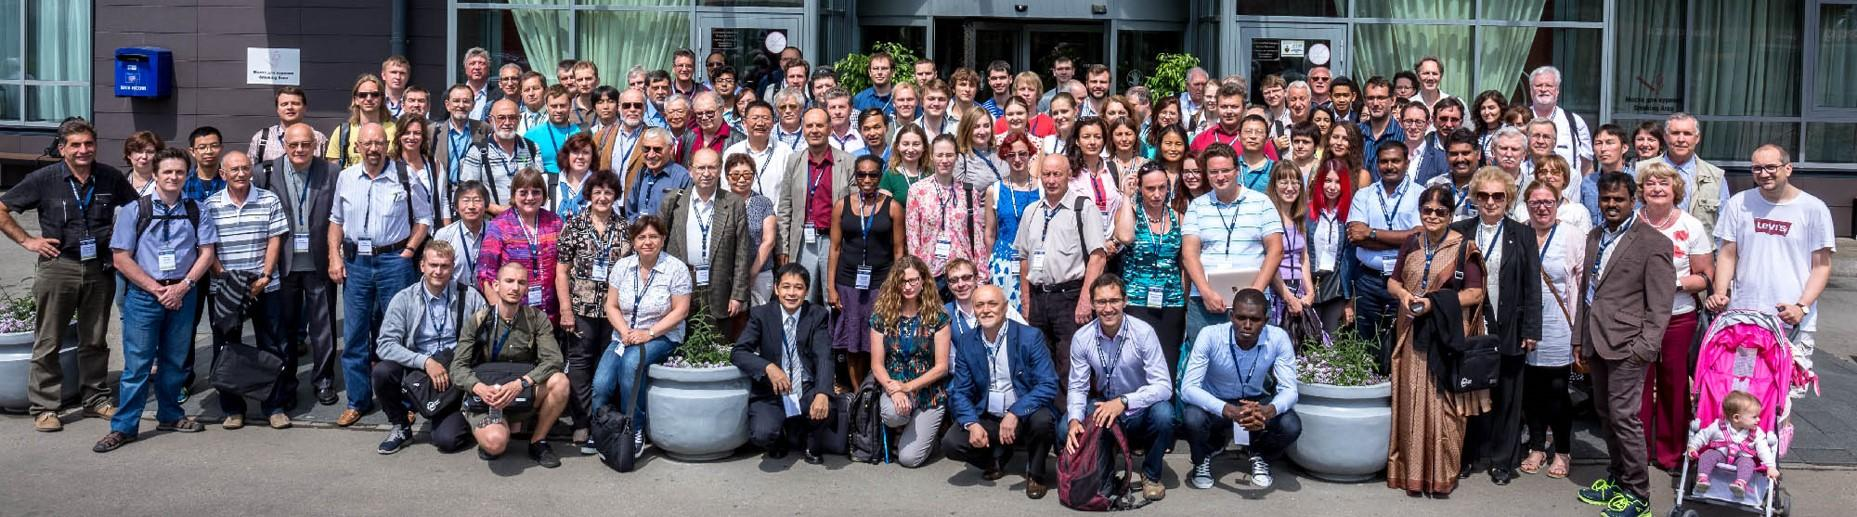 VarSITI2017_Symposium_group_photo_170710.jpg